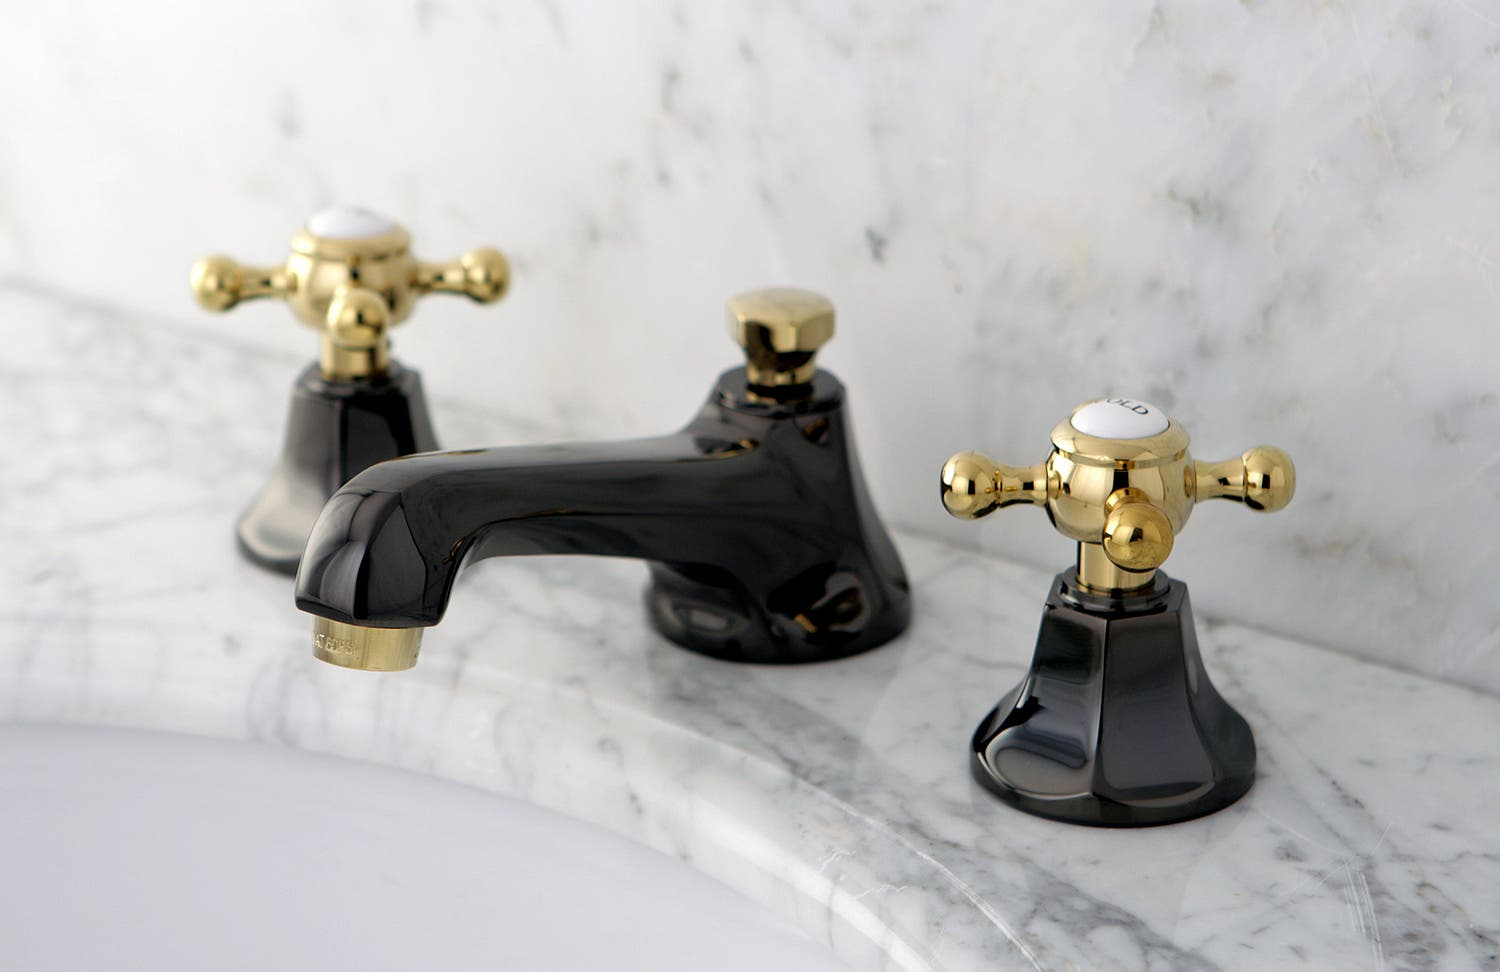 The Two-Tone Color Water Onyx Faucet Offers Elegance To The Bathroom ...